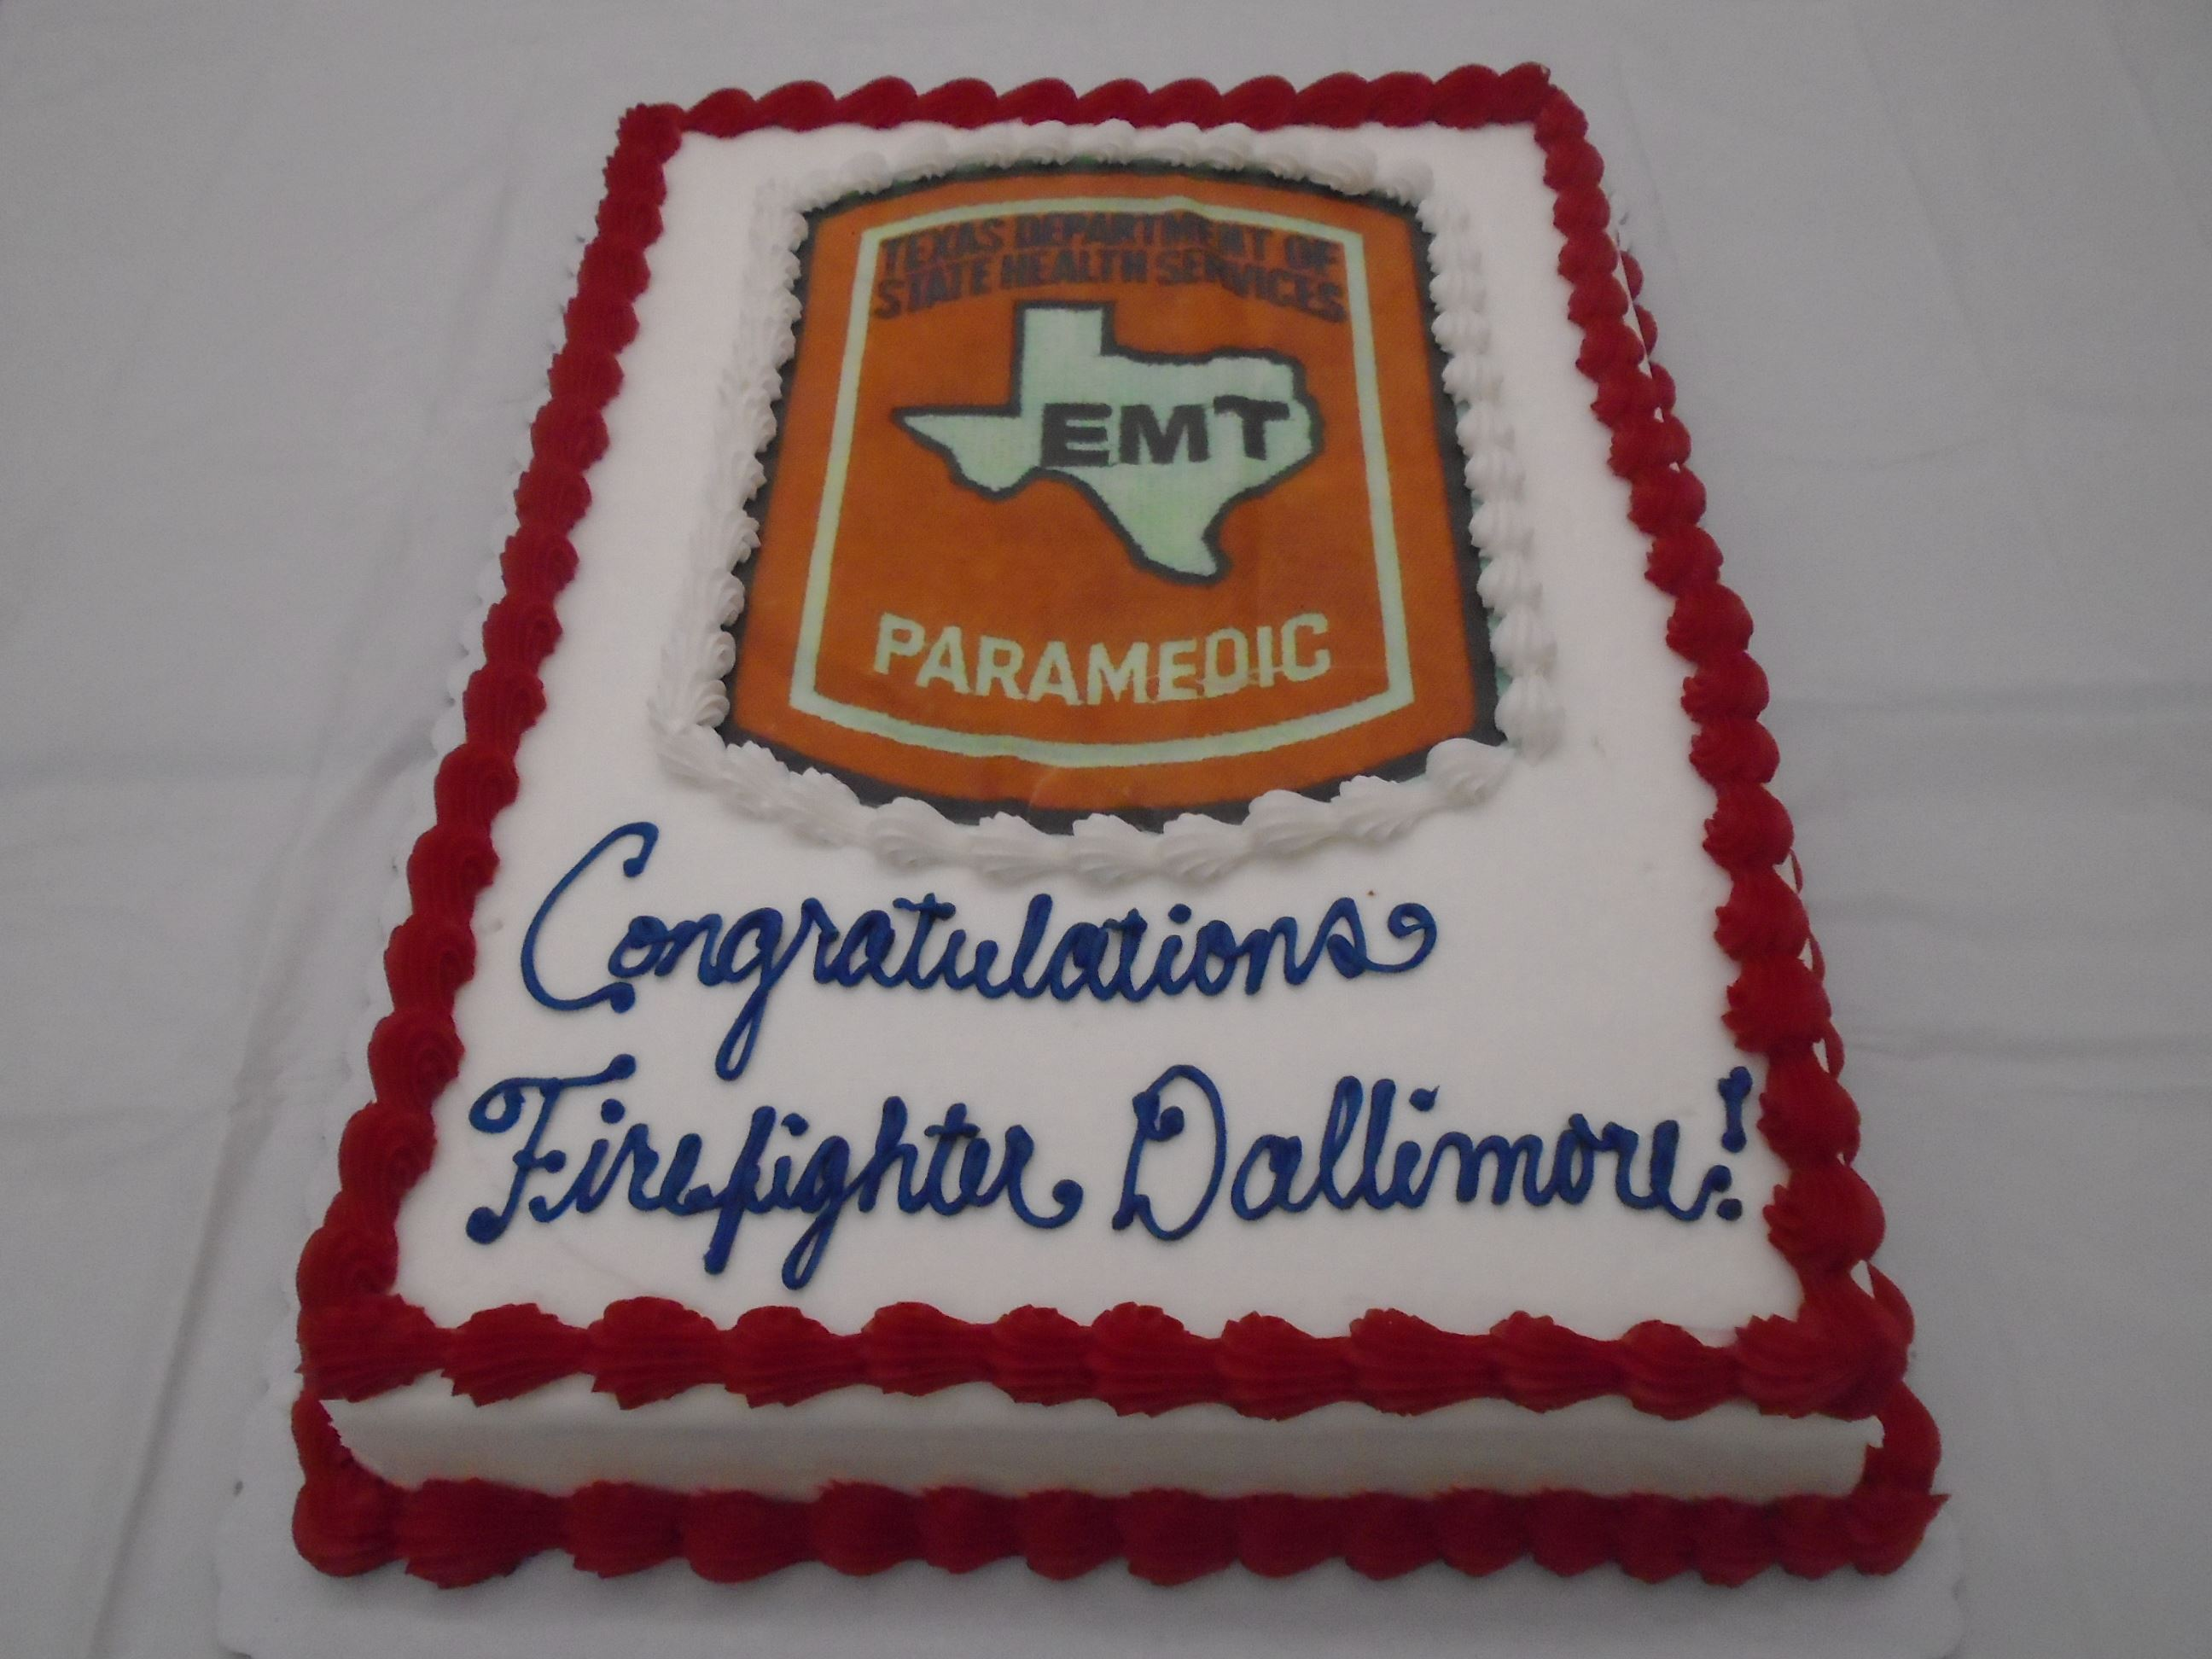 Custom cake ordered to celebrate firefighters paramedic certification.